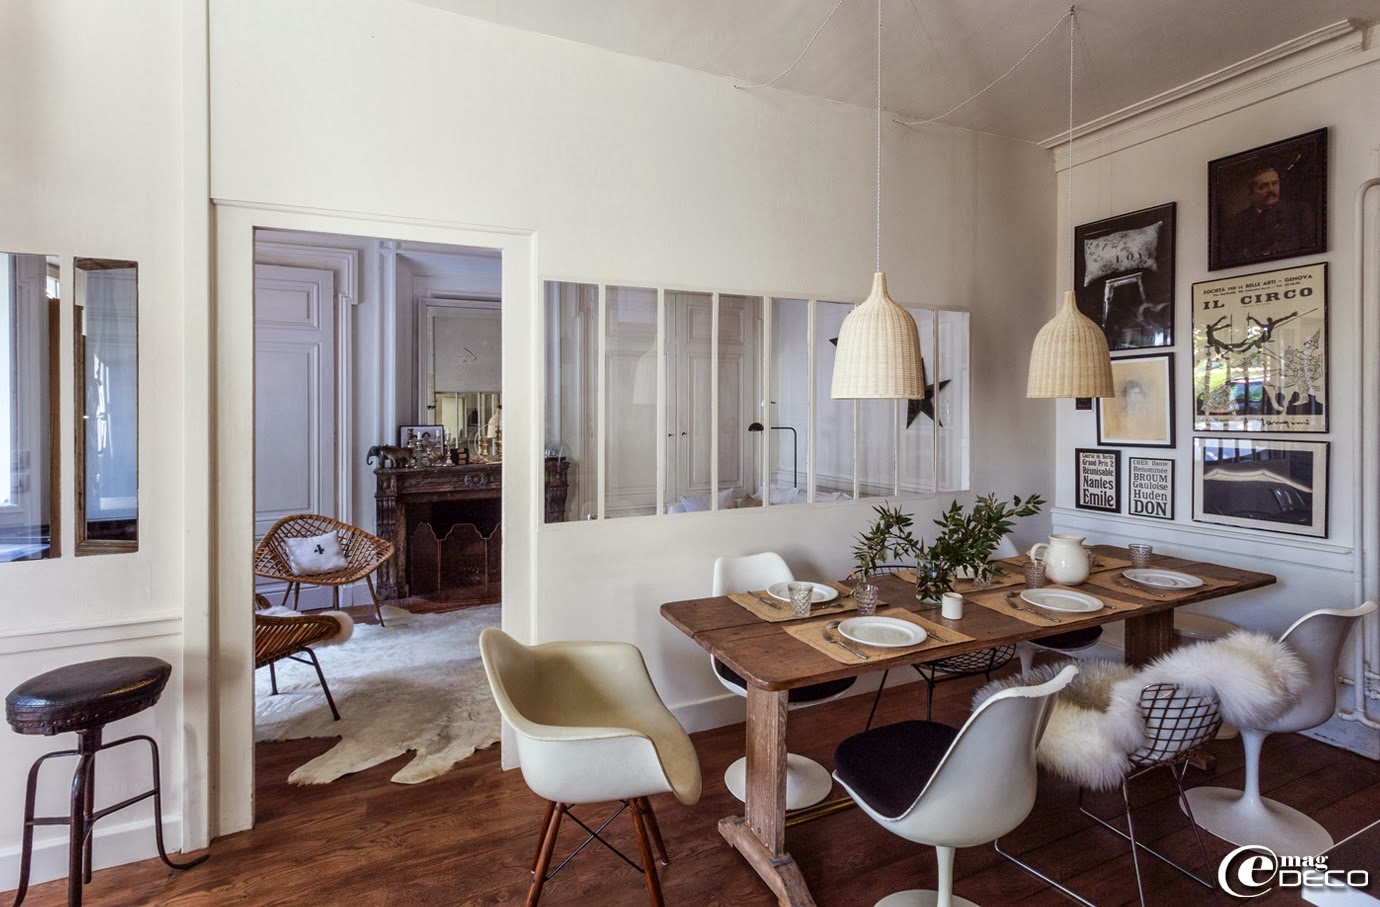 Interior decorative florence bouvier 39 s house in lyon for Table et chaises salle a manger